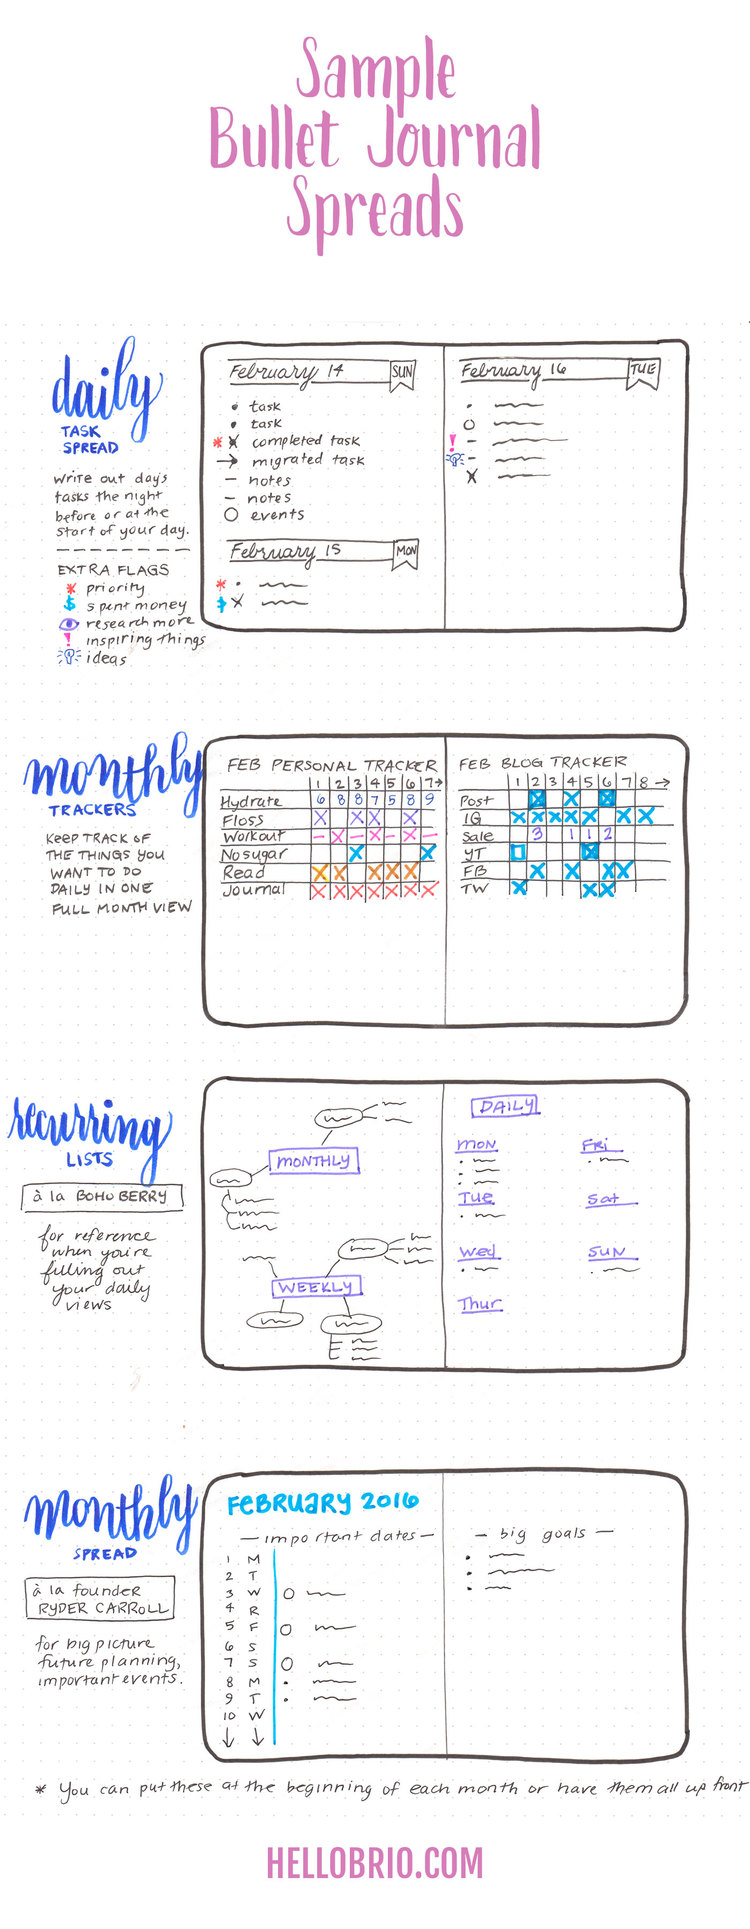 Sample bullet journal spreads - hellobrio.com